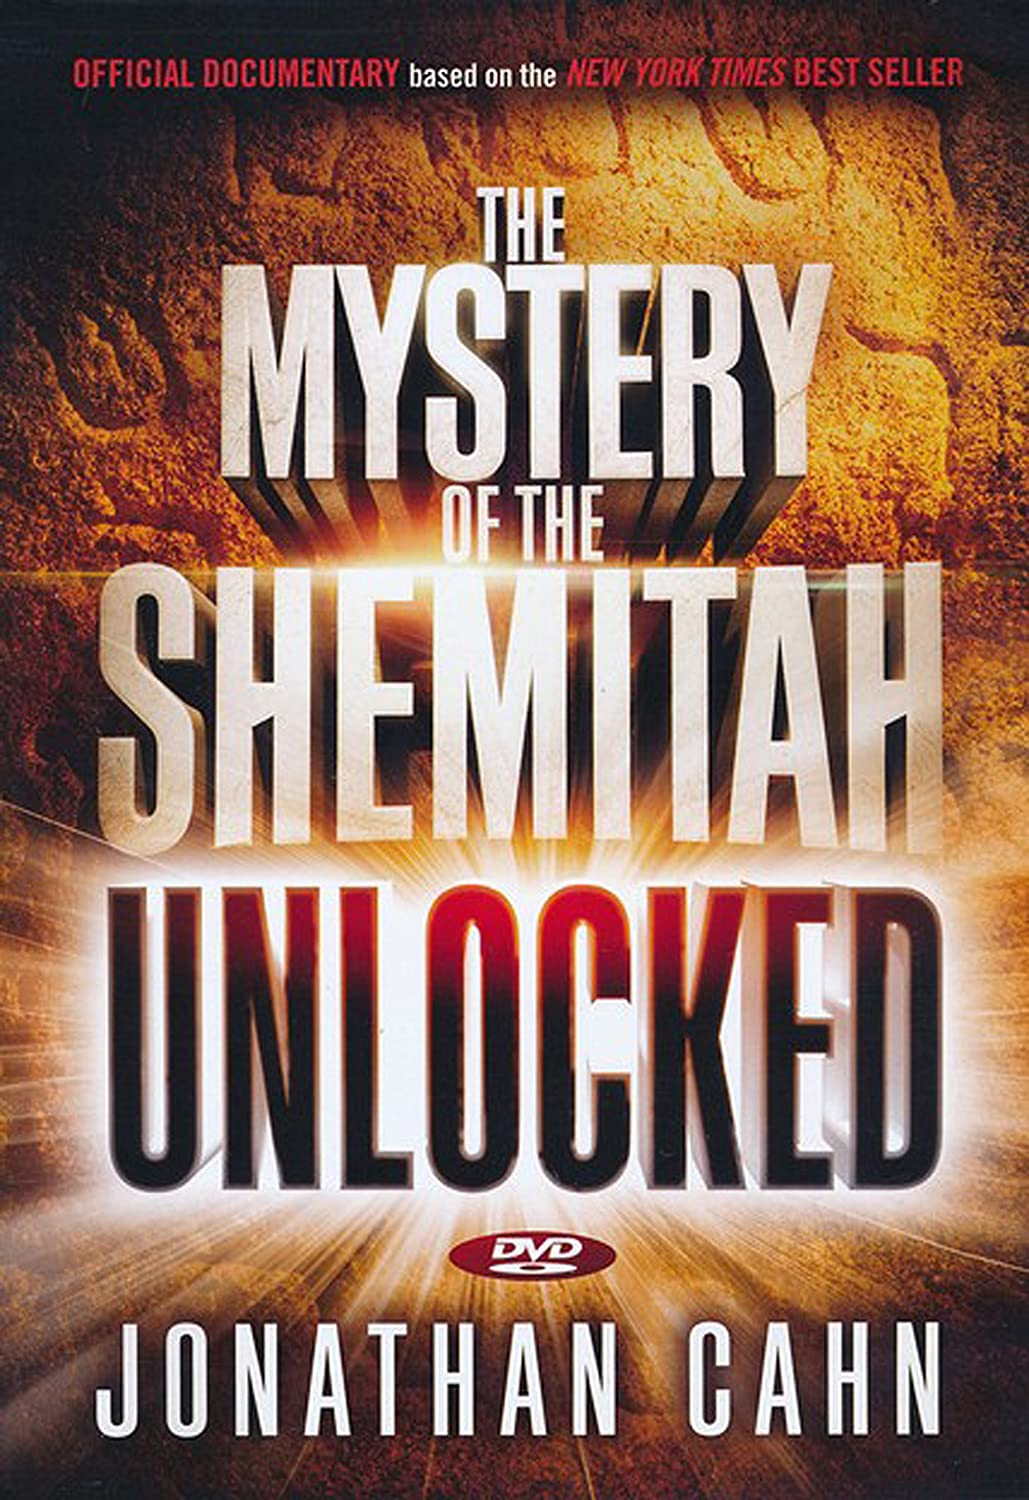 Amazon jonathan cahn dvd set the harbinger decoded the amazon jonathan cahn dvd set the harbinger decoded the mystery of the shemitah unlocked movies tv malvernweather Images